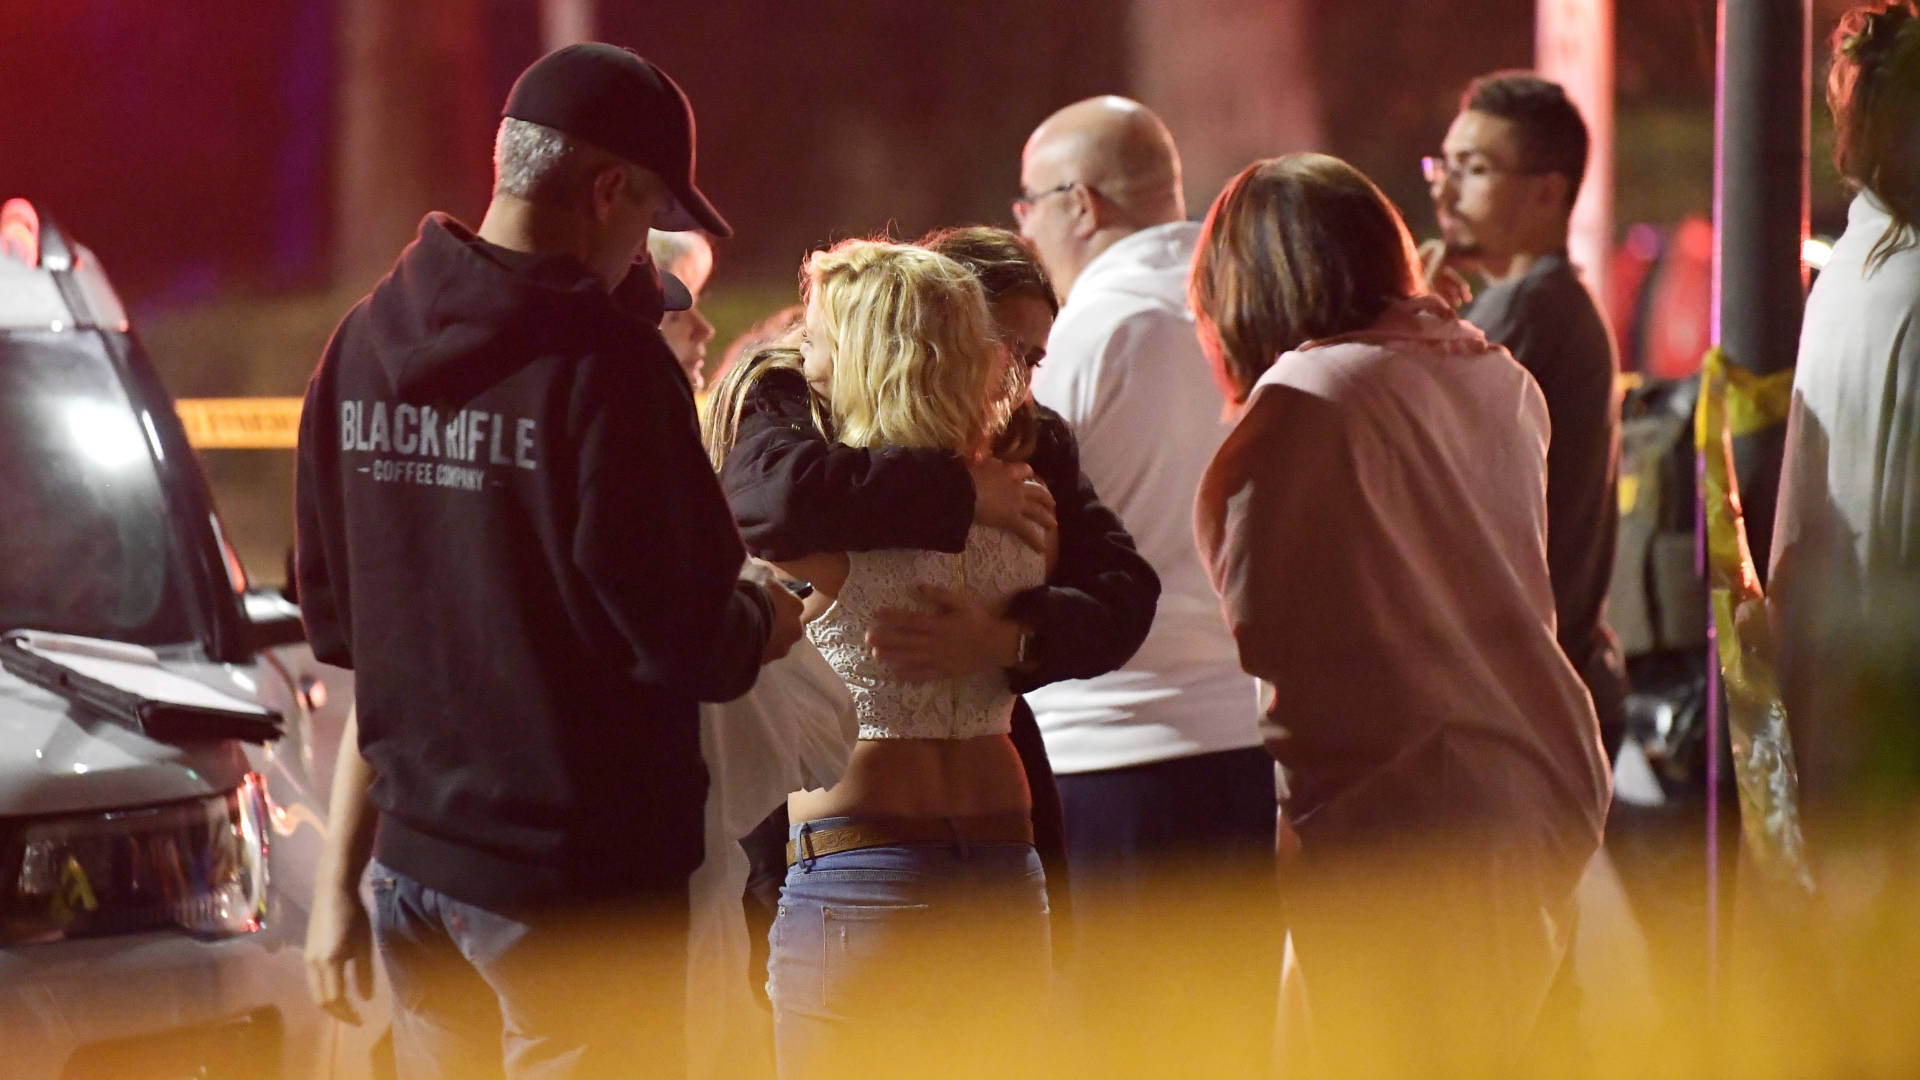 People comfort each other outside a bar in Thousand Oaks, where a gunman opened fire and killed 12. Mark J. Terrill/AP